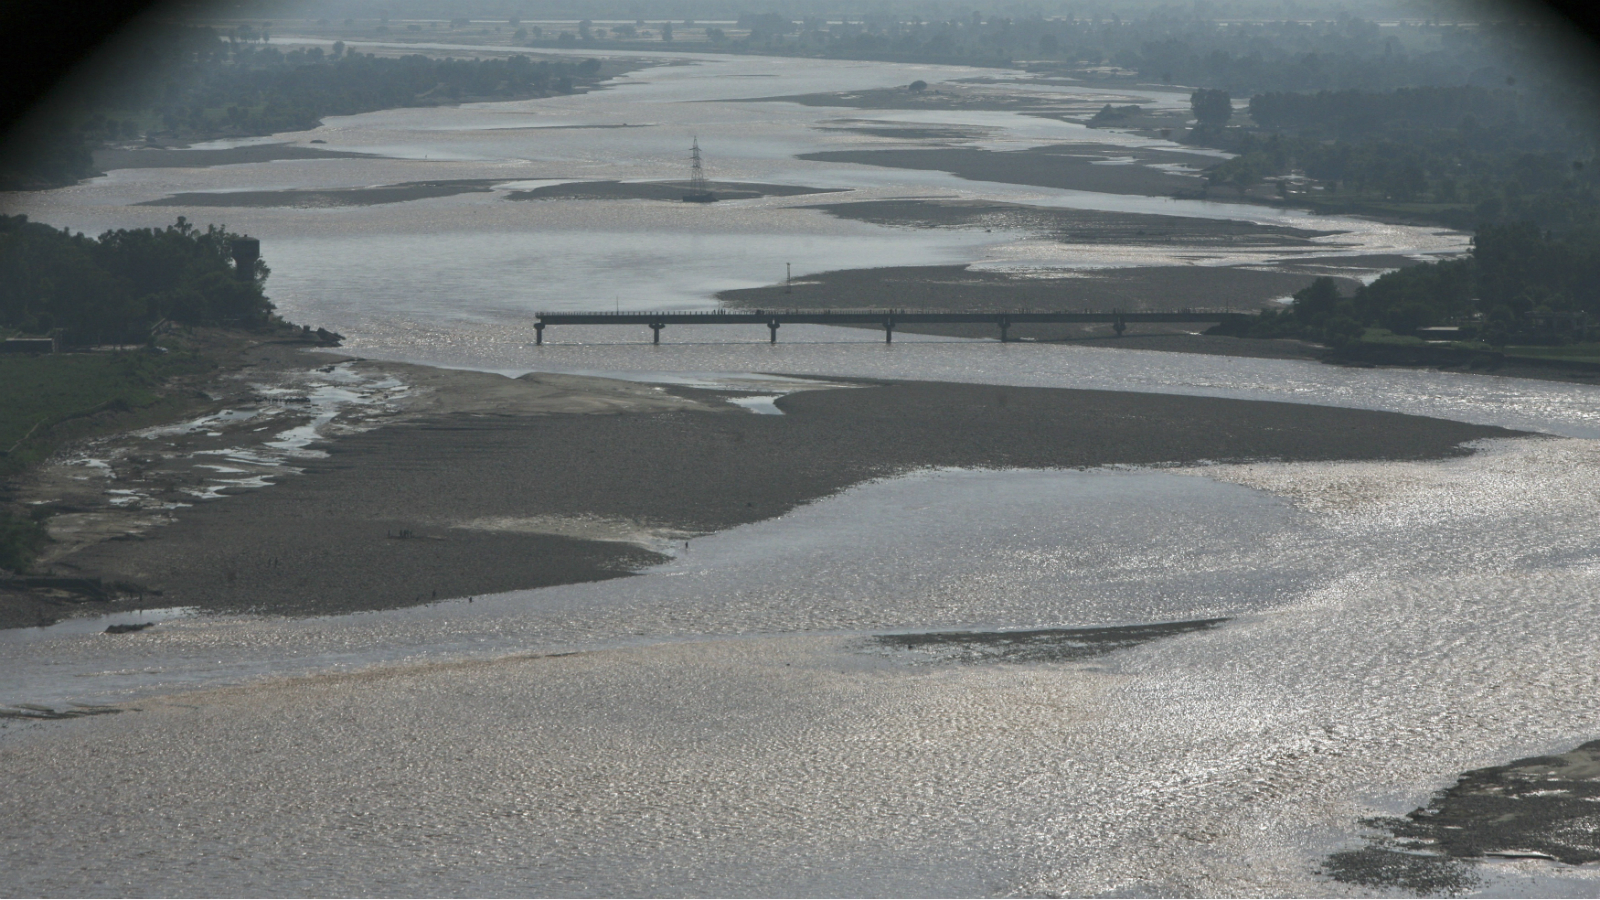 An aerial view taken from the Indian Air Force's helicopter shows a damaged bridge which was swept away by floods on the river Tawi in the outskirts of Jammu September 7, 2014. The death toll from serious flooding in Indian-administered Kashmir climbed to 175 on Sunday, with homes, military bases and hospitals inundated in the region's main city Srinagar as the Jhelum river overflowed its banks. About 22 air force helicopters and four aircraft were deployed to evacuate stranded people and to deliver relief.